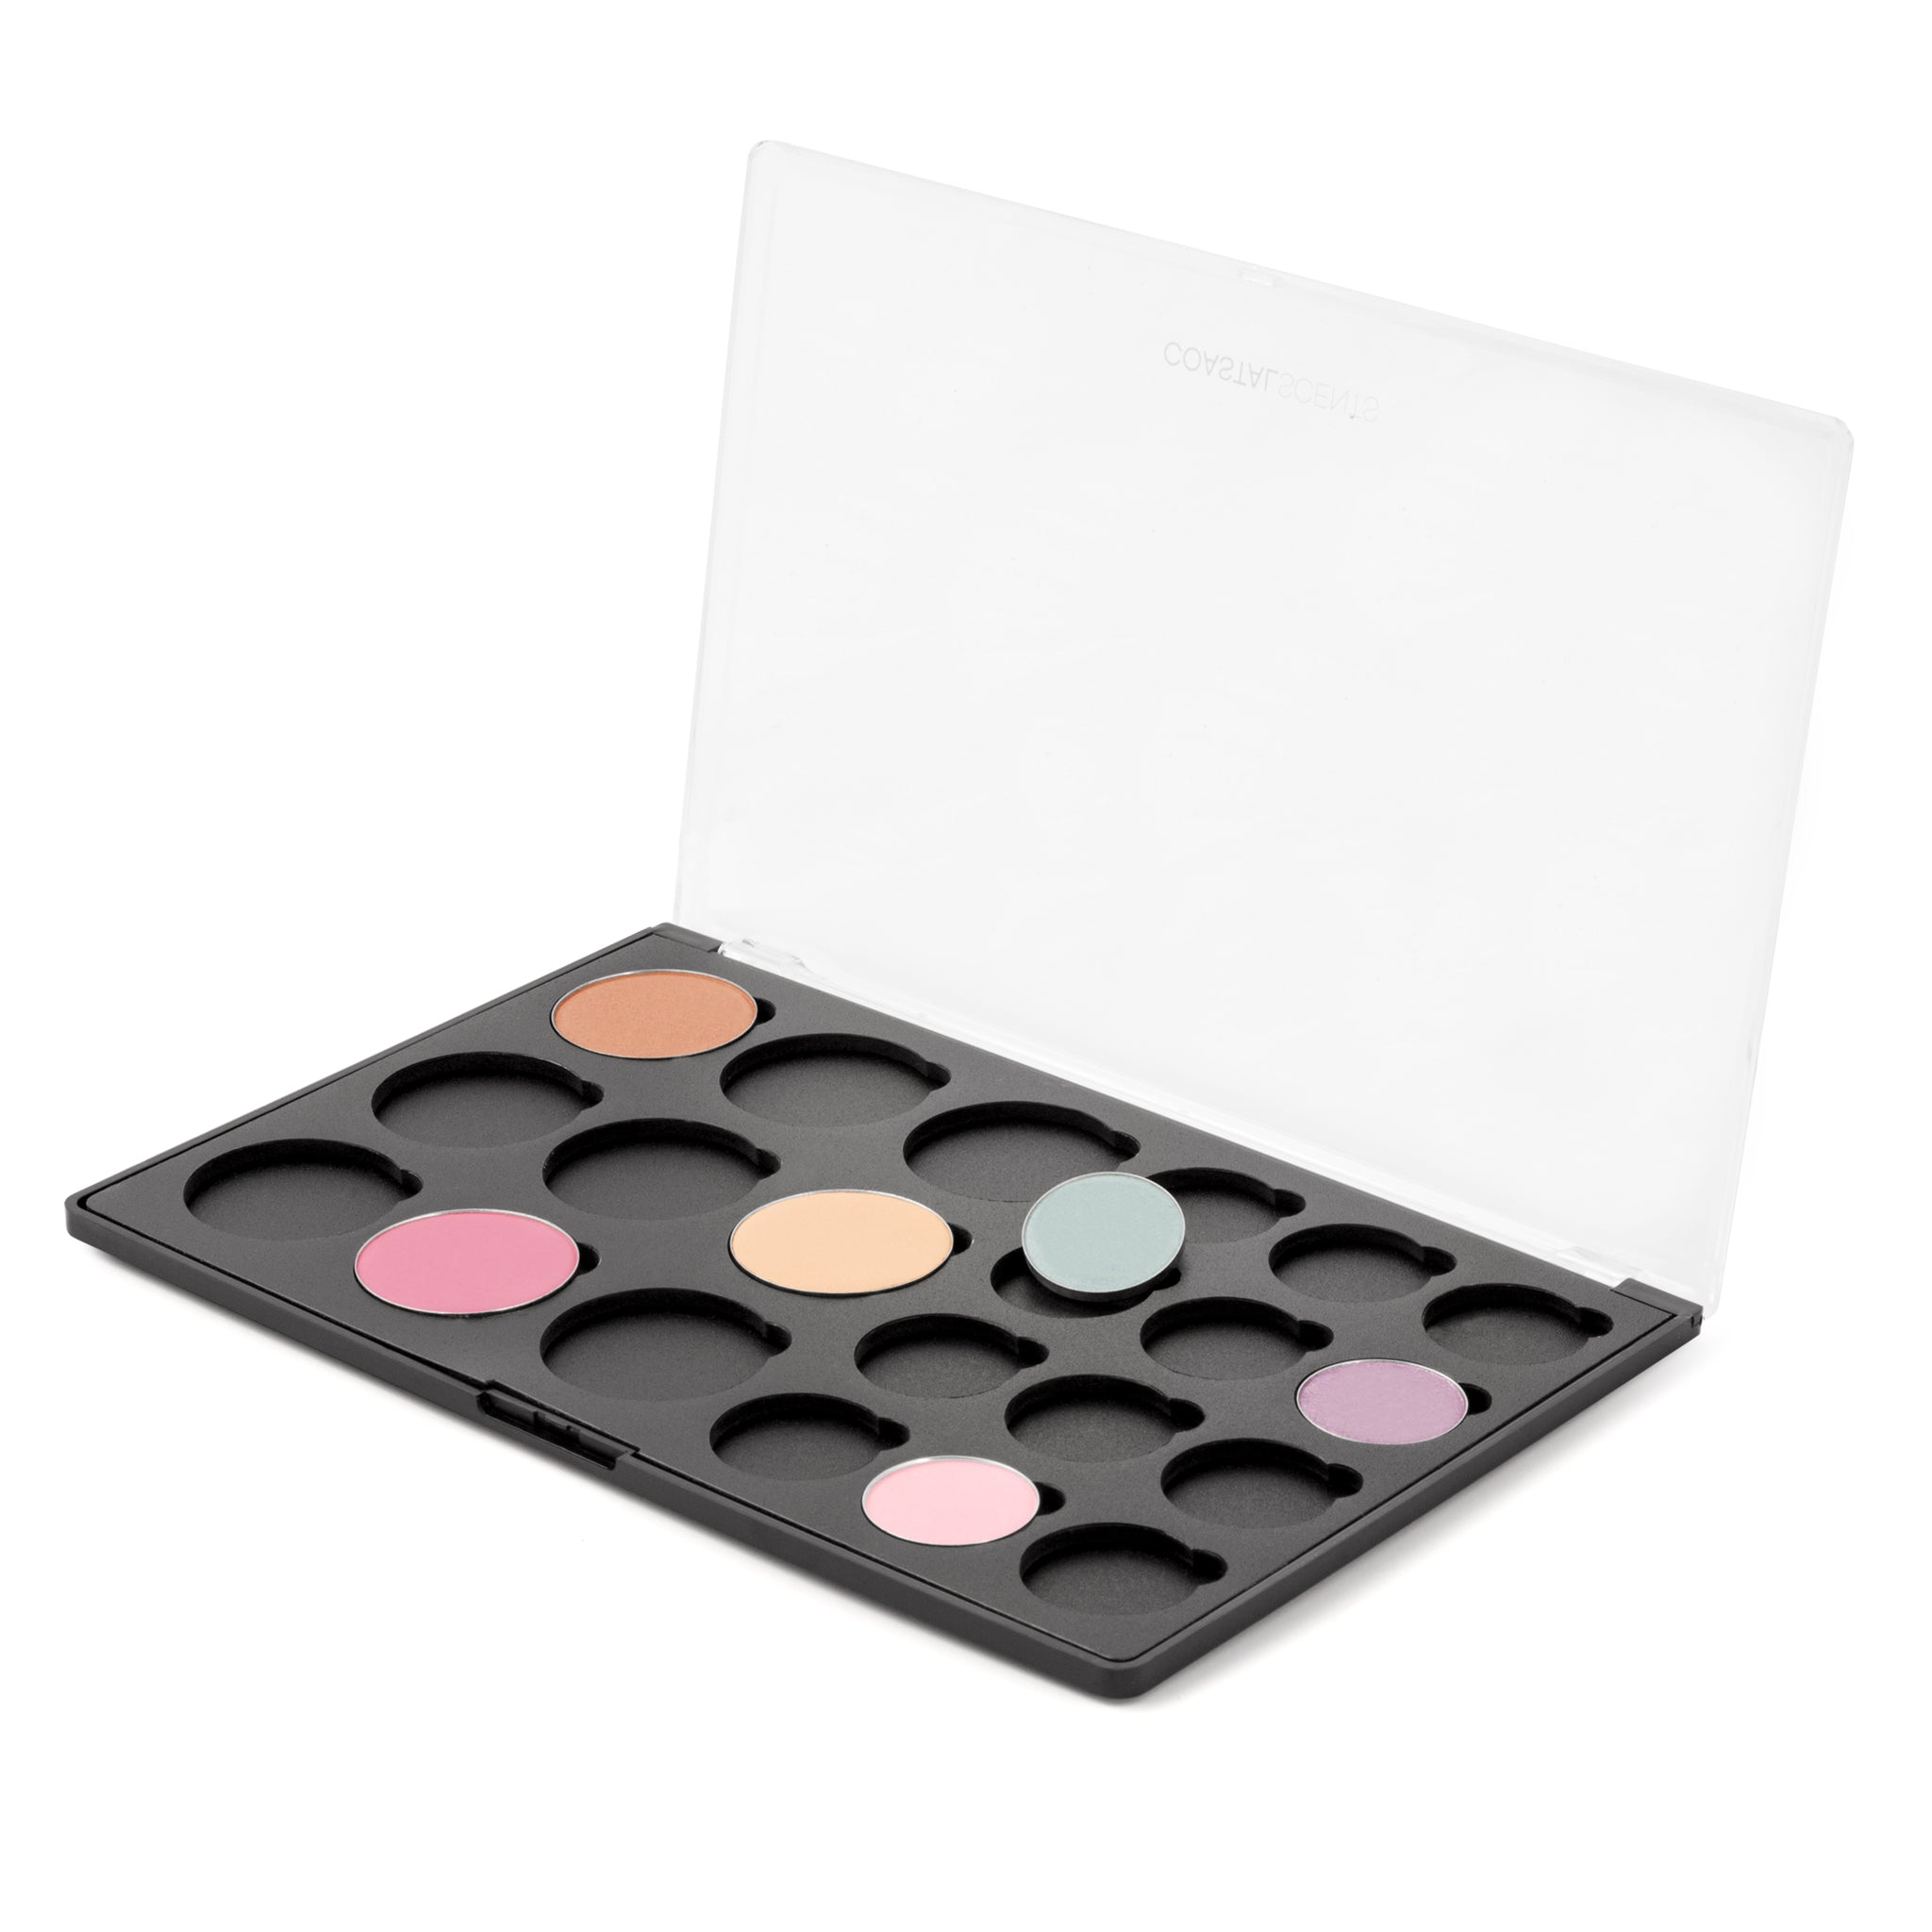 Makeup Palette- Empty Palette: 9 Blushes and 12 Shadows With Hotpots By Coastal Scents